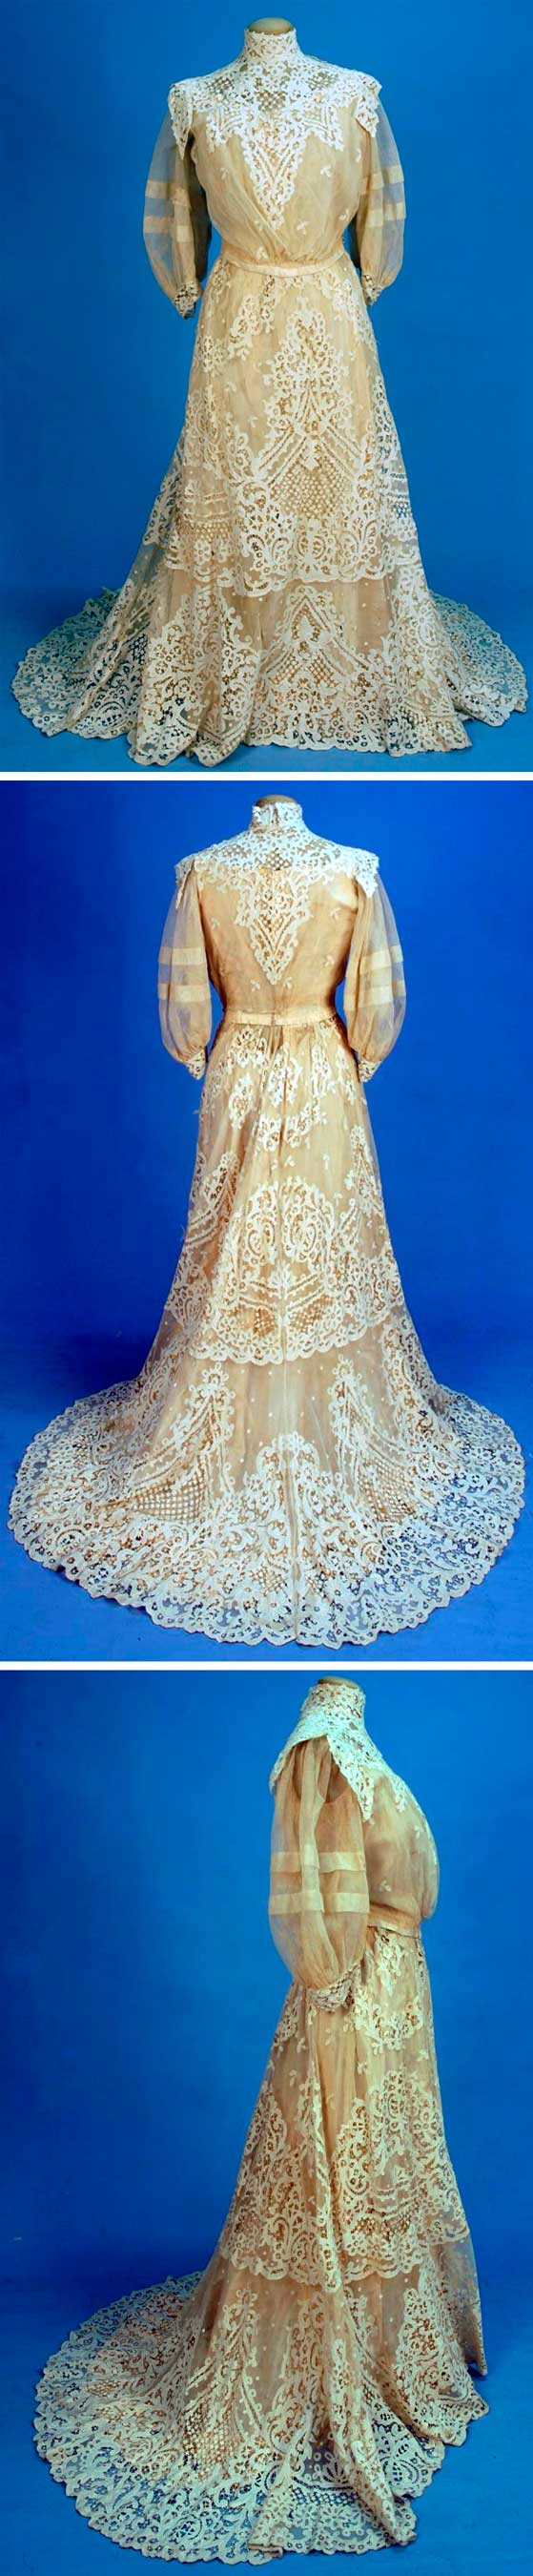 Lace gown, ca. 1904. Two-piece cream net with 3/4 balloon sleeves and floral applique lace with cloverleaf lattice over boned silk bodice. Chiffon underskirt with pleated hem ruffle. Silk lining. Whitaker Auctions